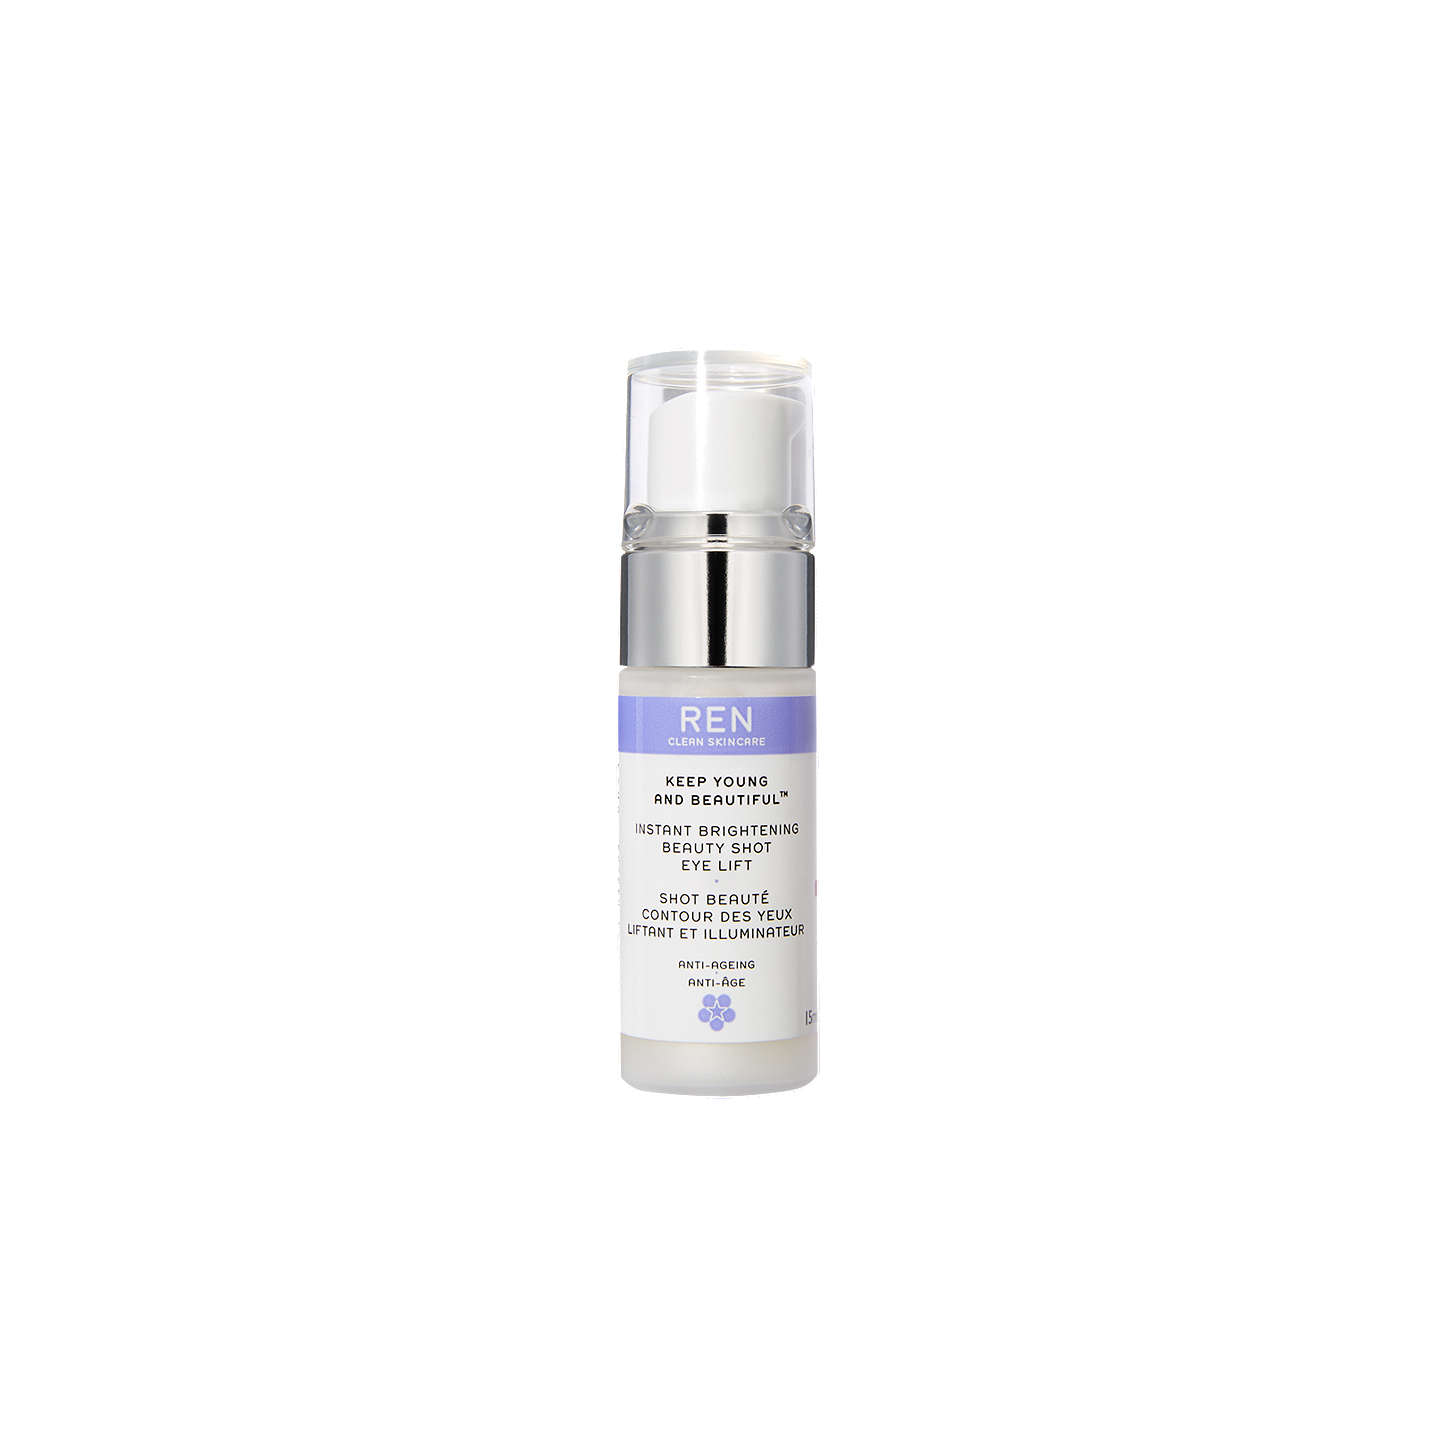 BuyREN Keep Young and Beautiful Instant Brightening Beauty Shot Eye Lift, 15ml Online at johnlewis.com